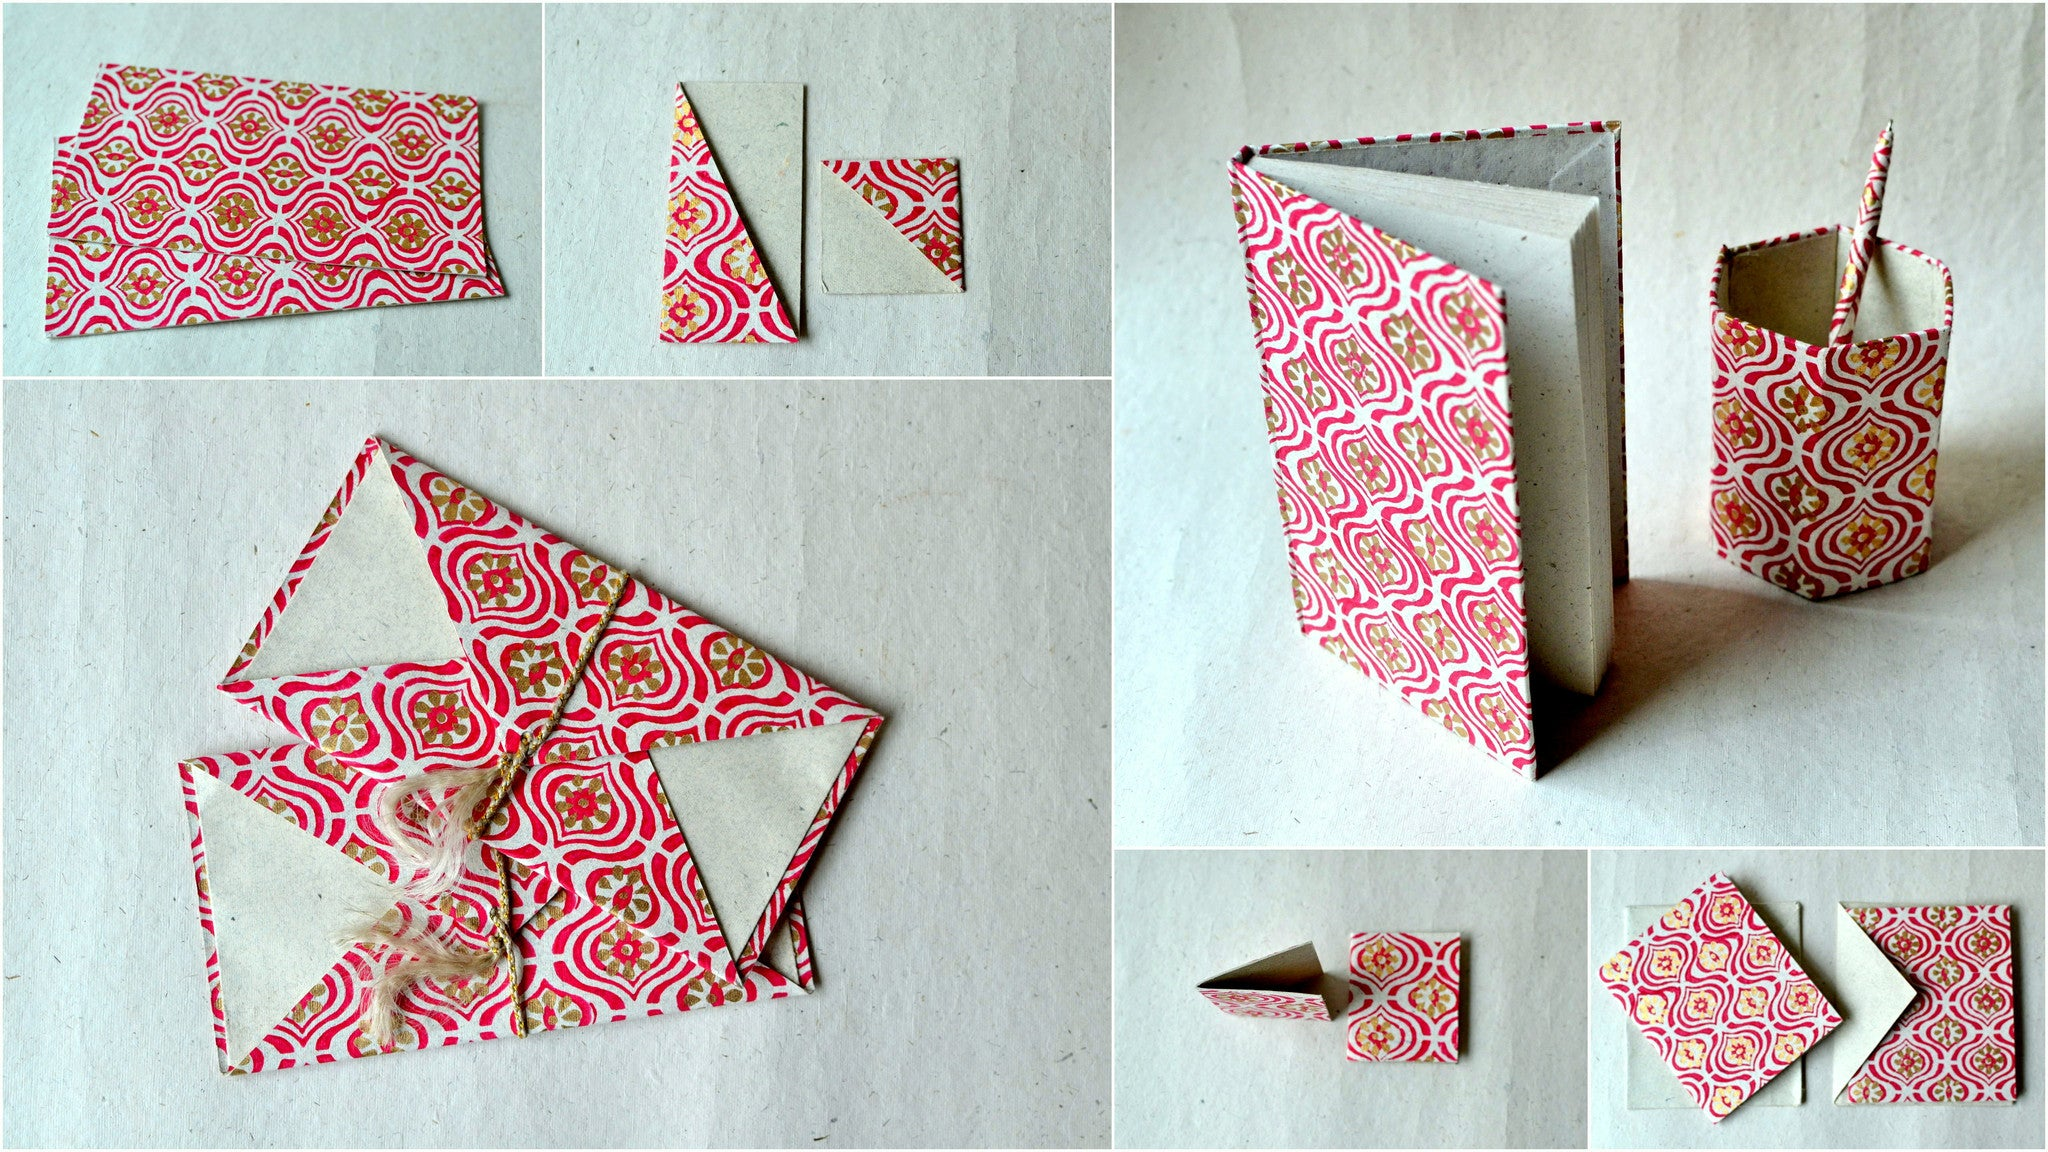 Block printed lamp-in-stationery set-Rani